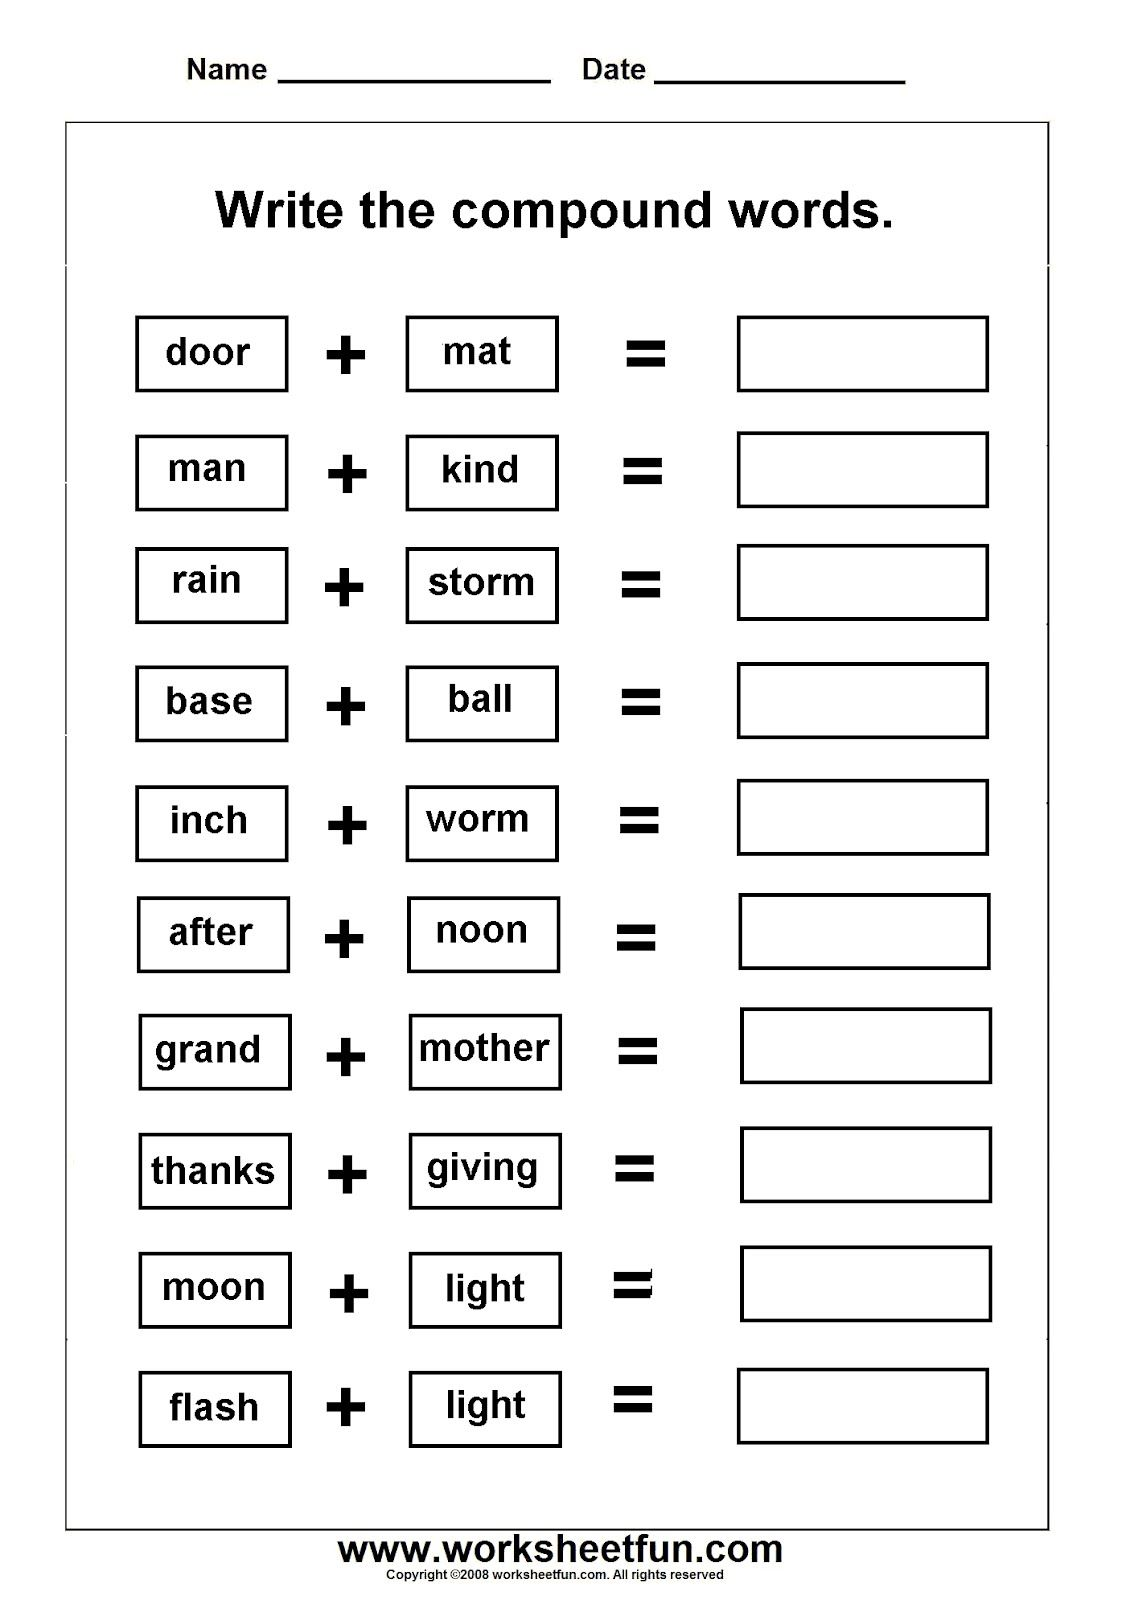 Worksheets On Compound Words With Pictures | ELA activities ...